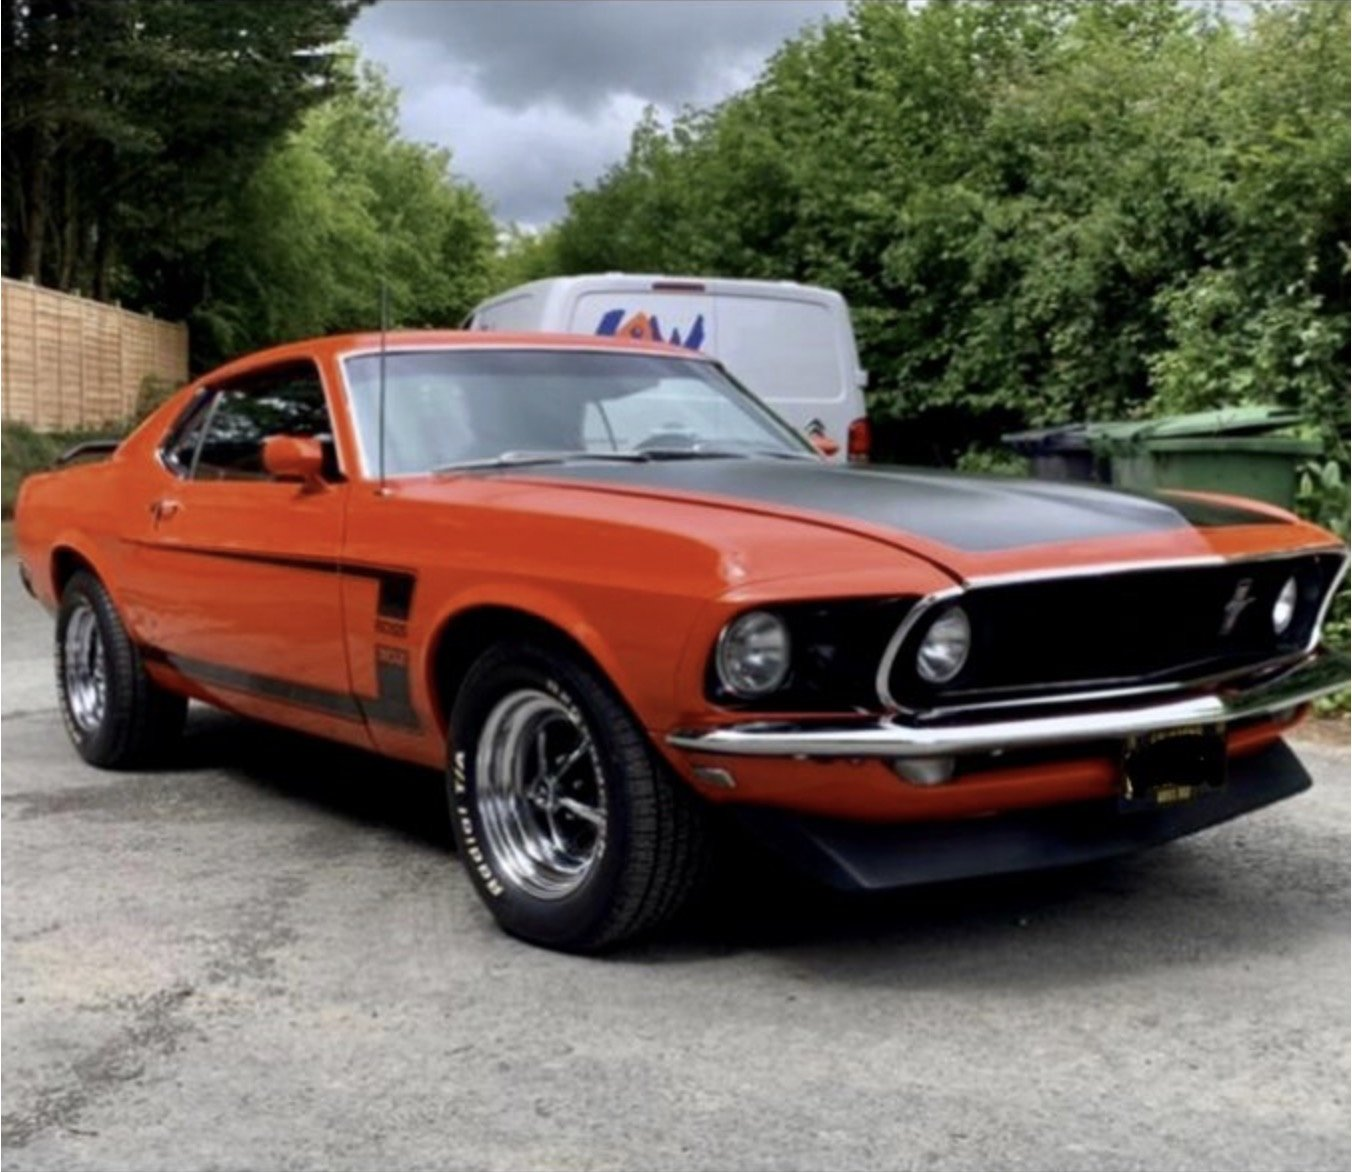 FORD MUSTANG 1969 BOSS 302 For Sale (picture 1 of 6)